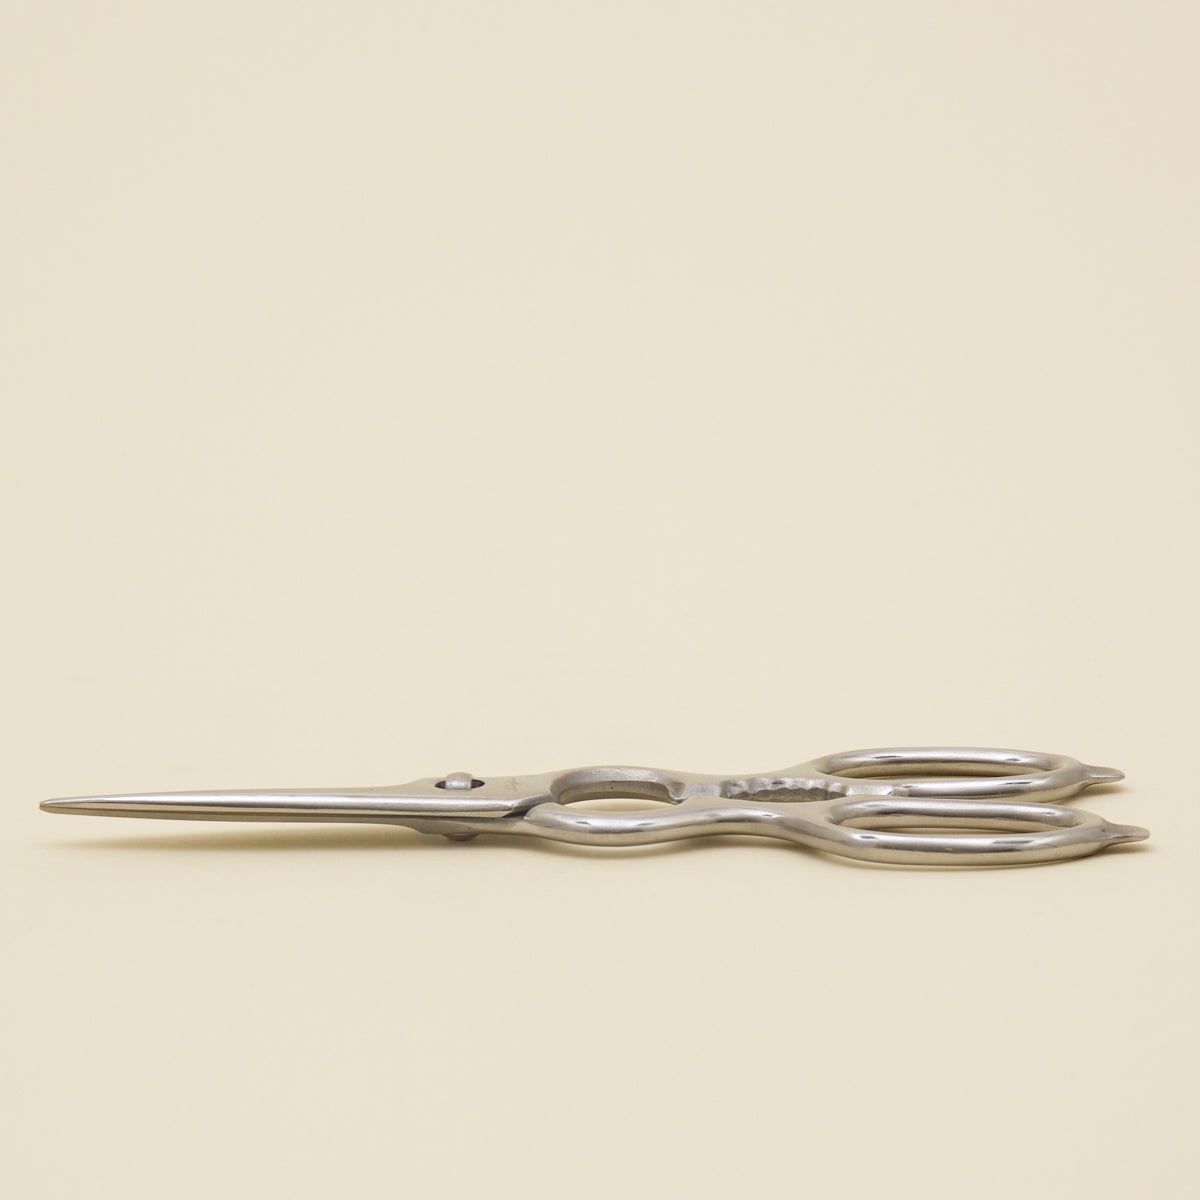 Detachable Kitchen Scissors